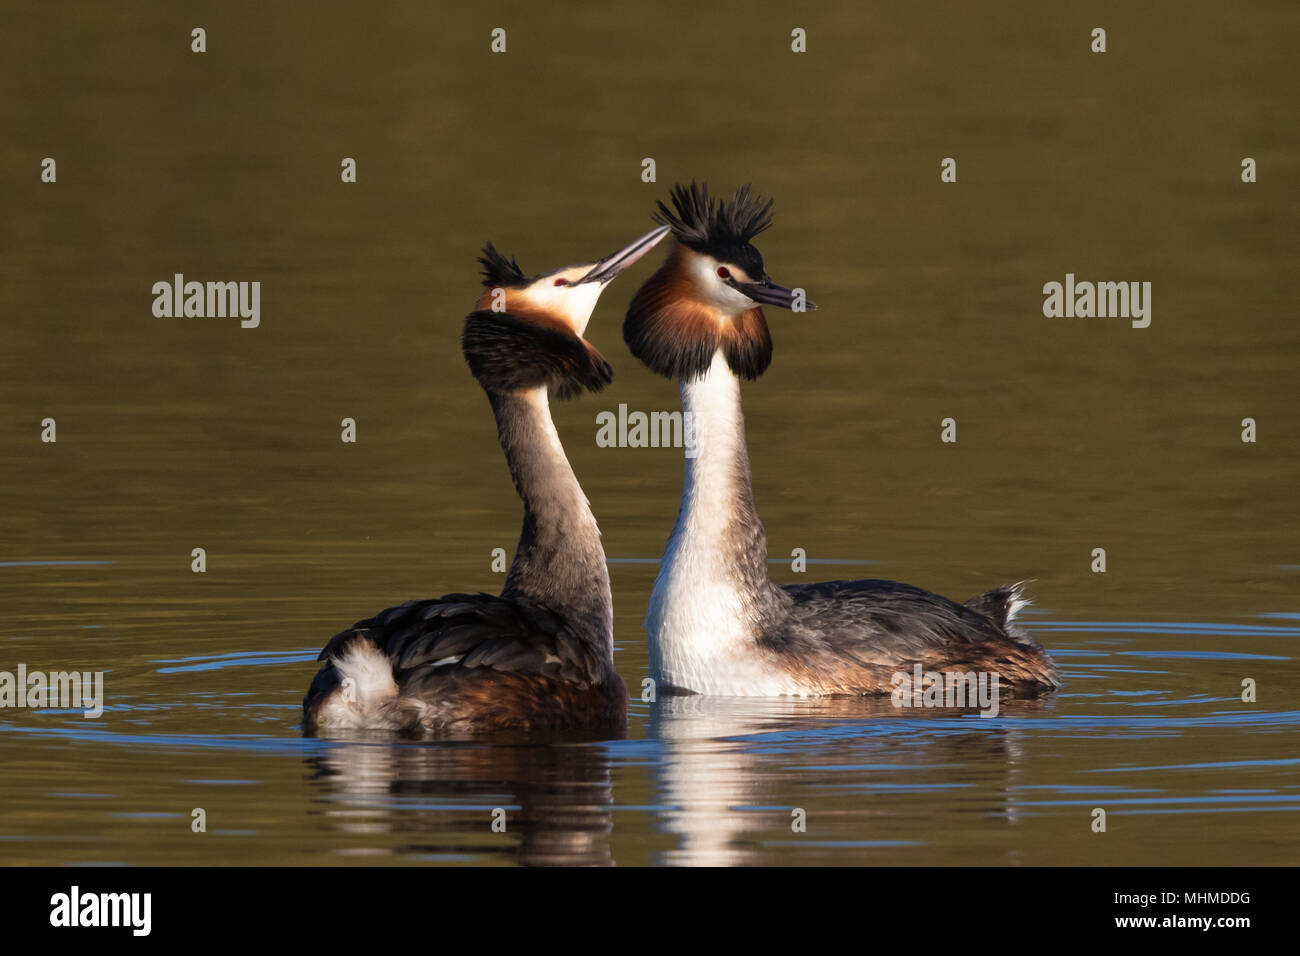 pair of Great Crested Grebes (Podiceps cristatus) facing each other at the start of their courtship display - Stock Image